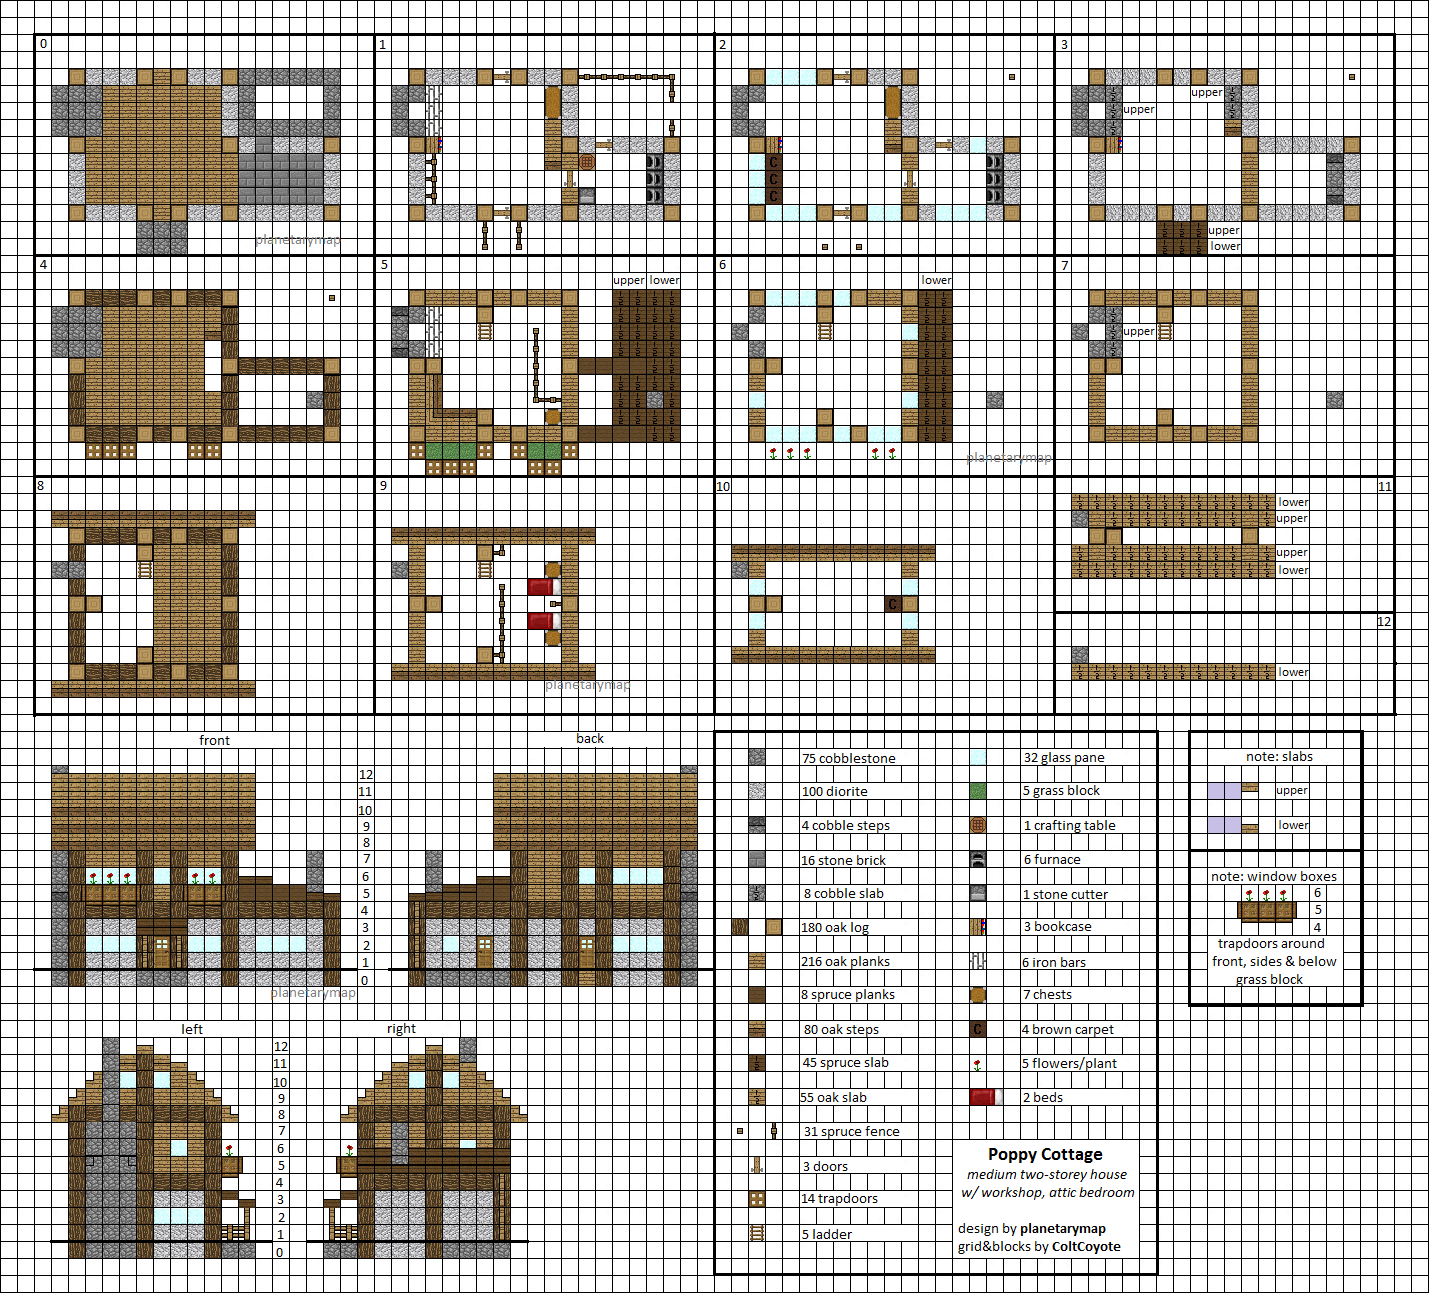 Poppy Cottage Medium Minecraft House Blueprints Minecraft Cottage Minecraft Blueprints Minecraft Castle